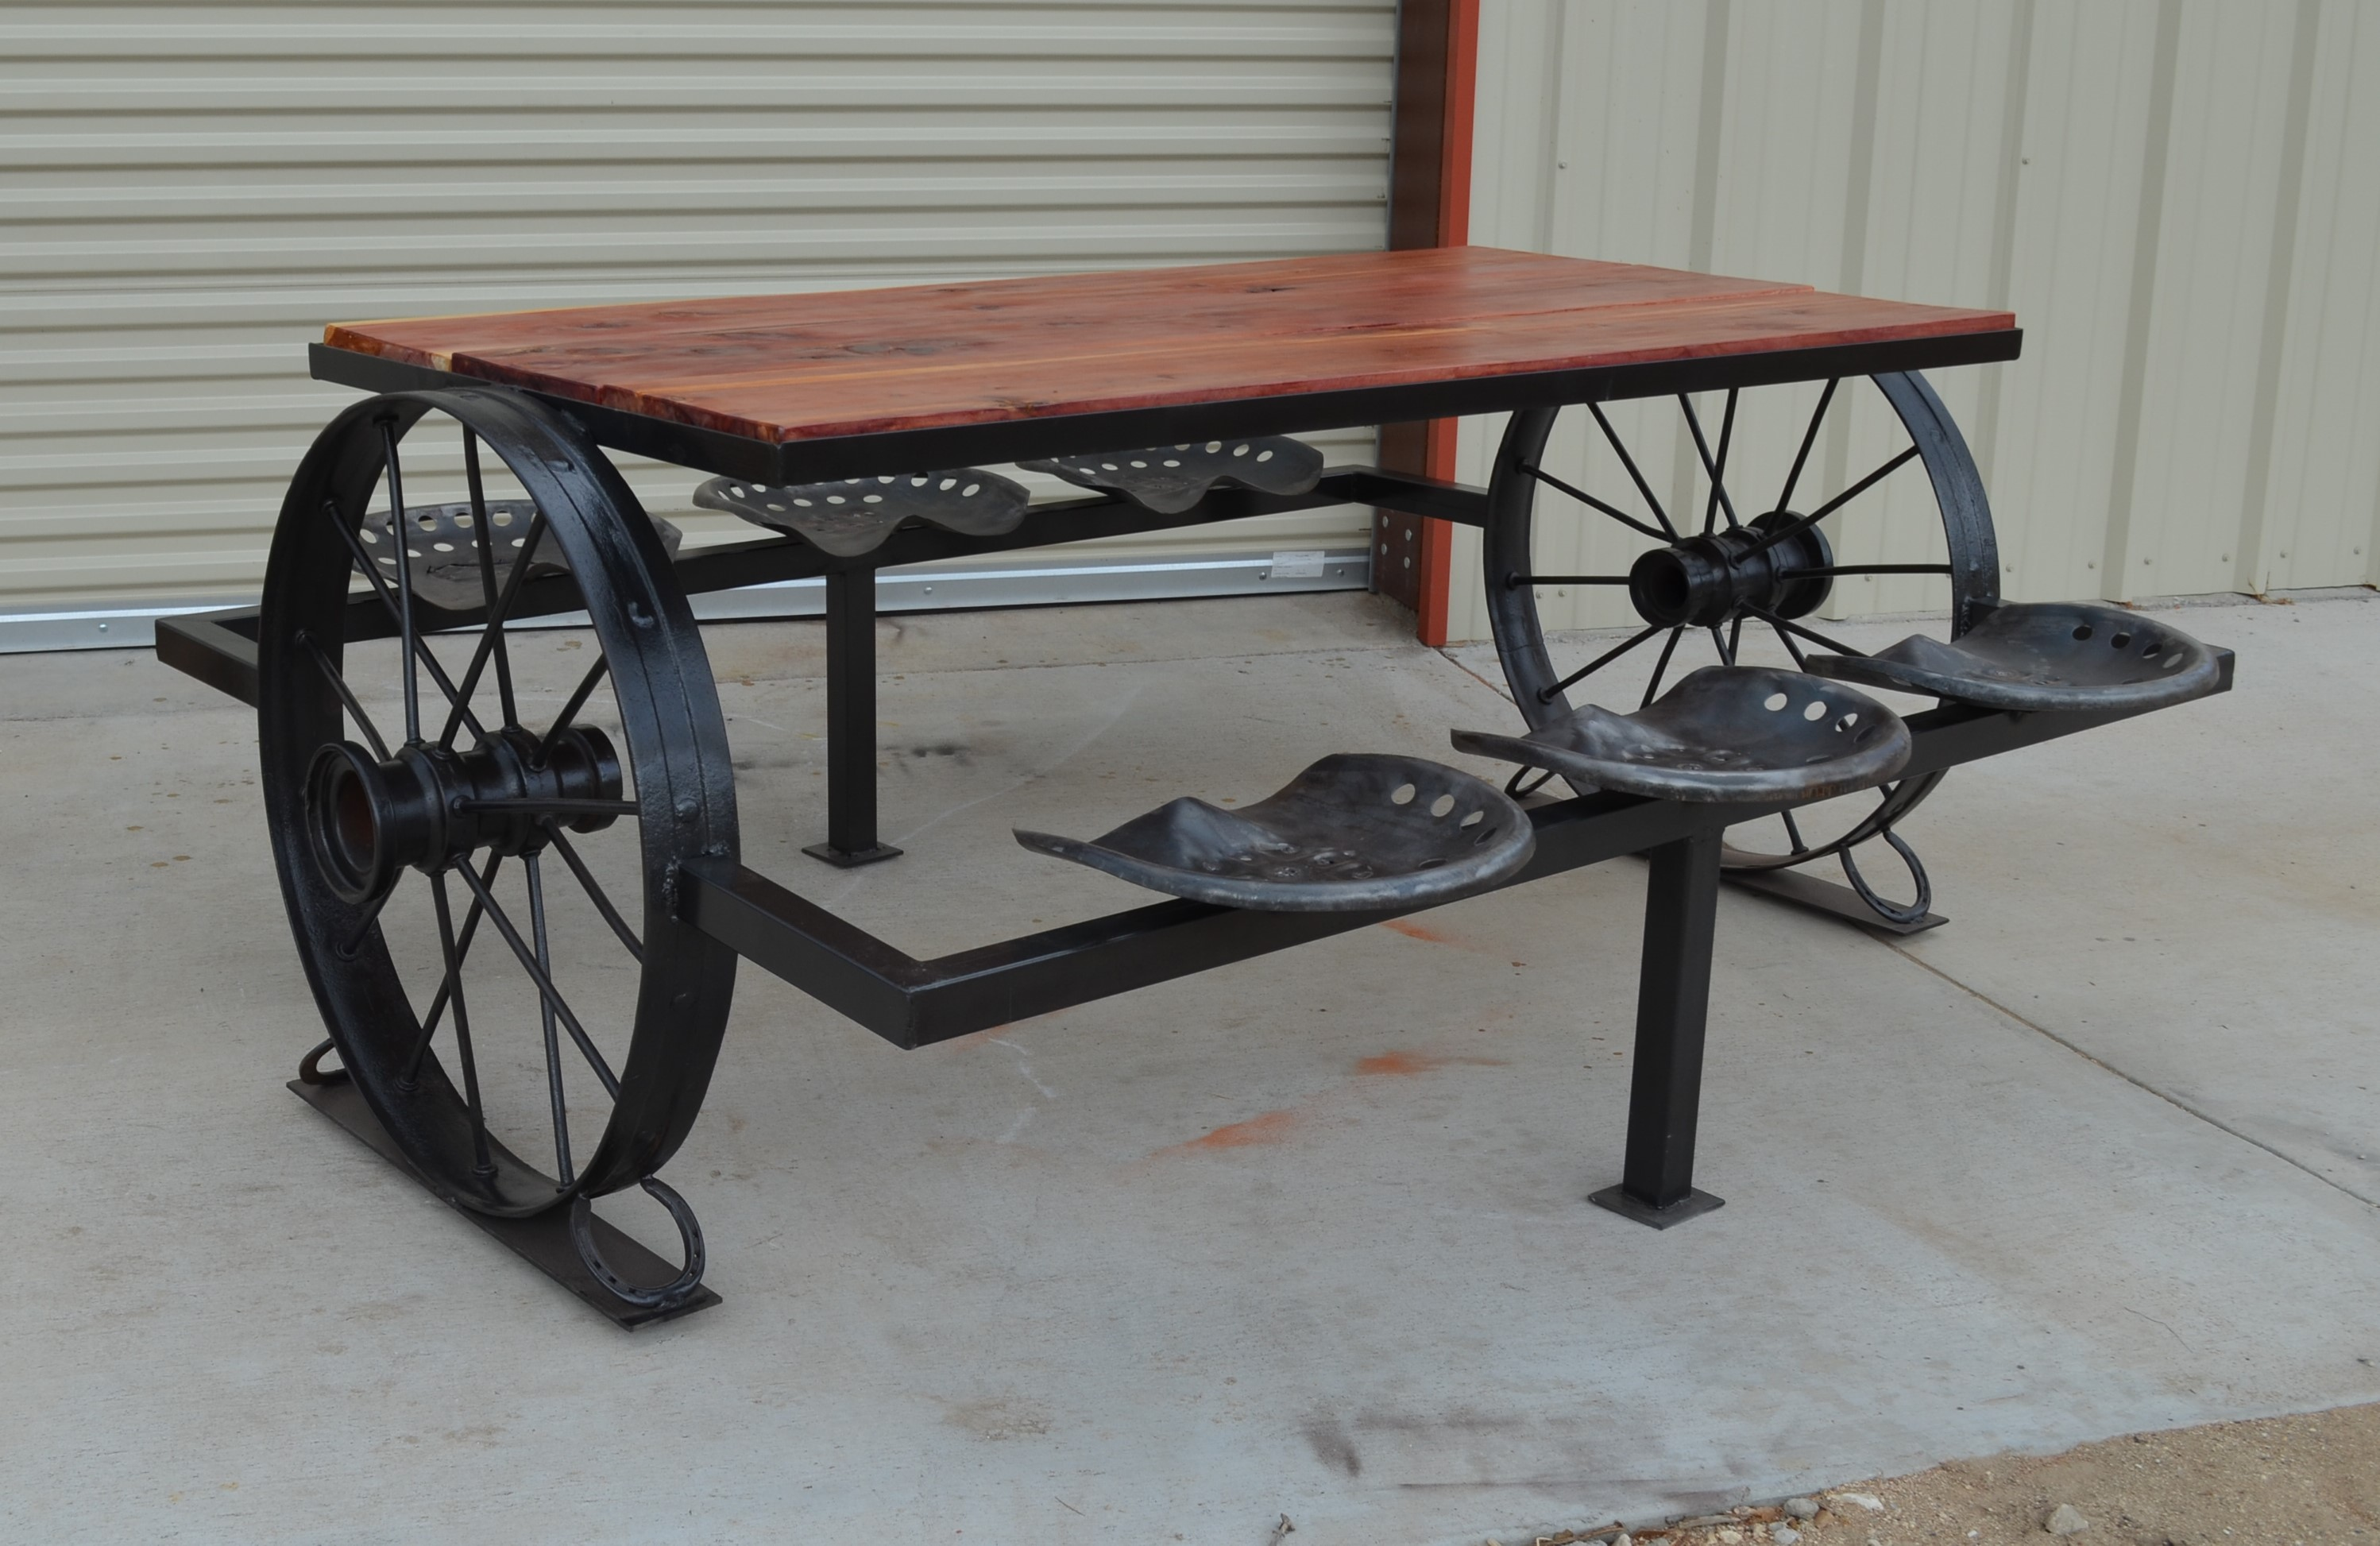 Sycamore Creek Creations - Dallas cowboys picnic table